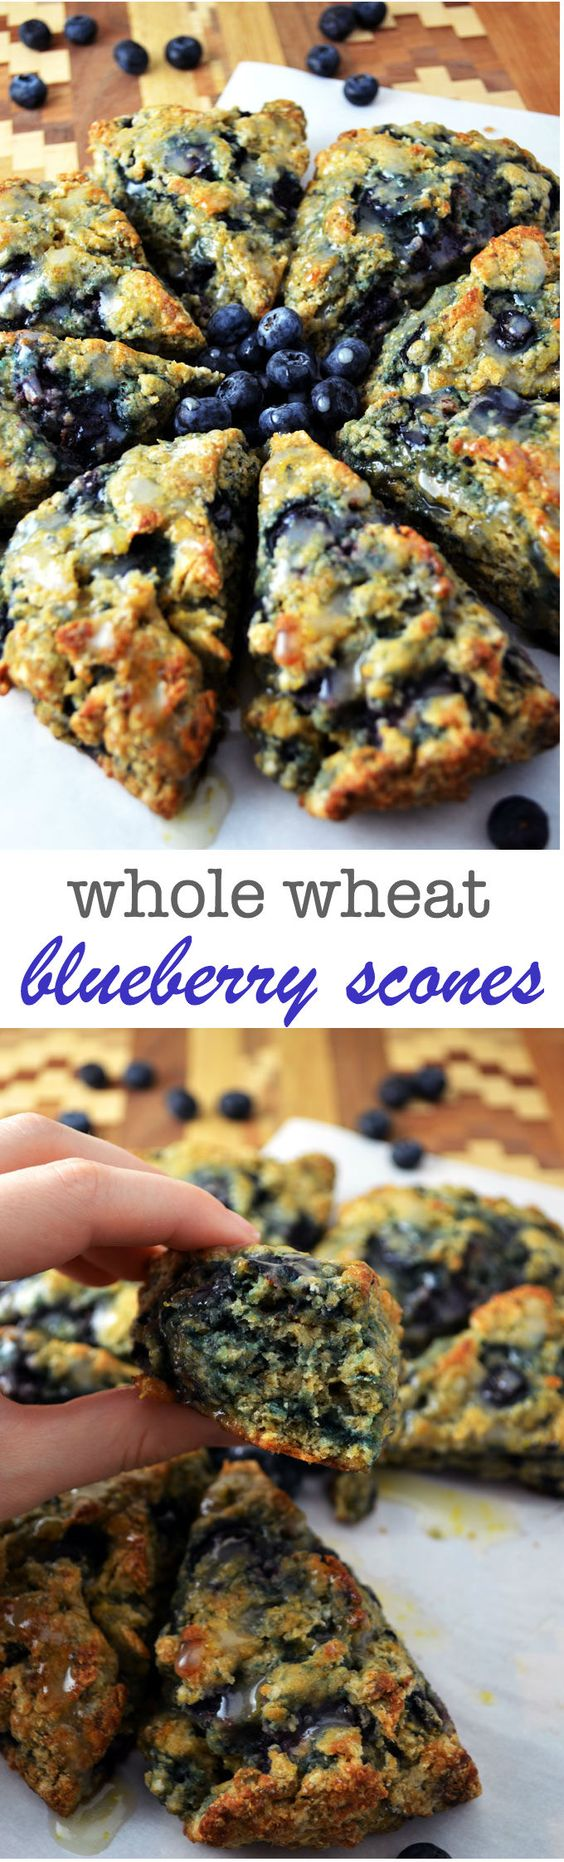 Whole Wheat Blackberry Ricotta Scones Recipe — Dishmaps